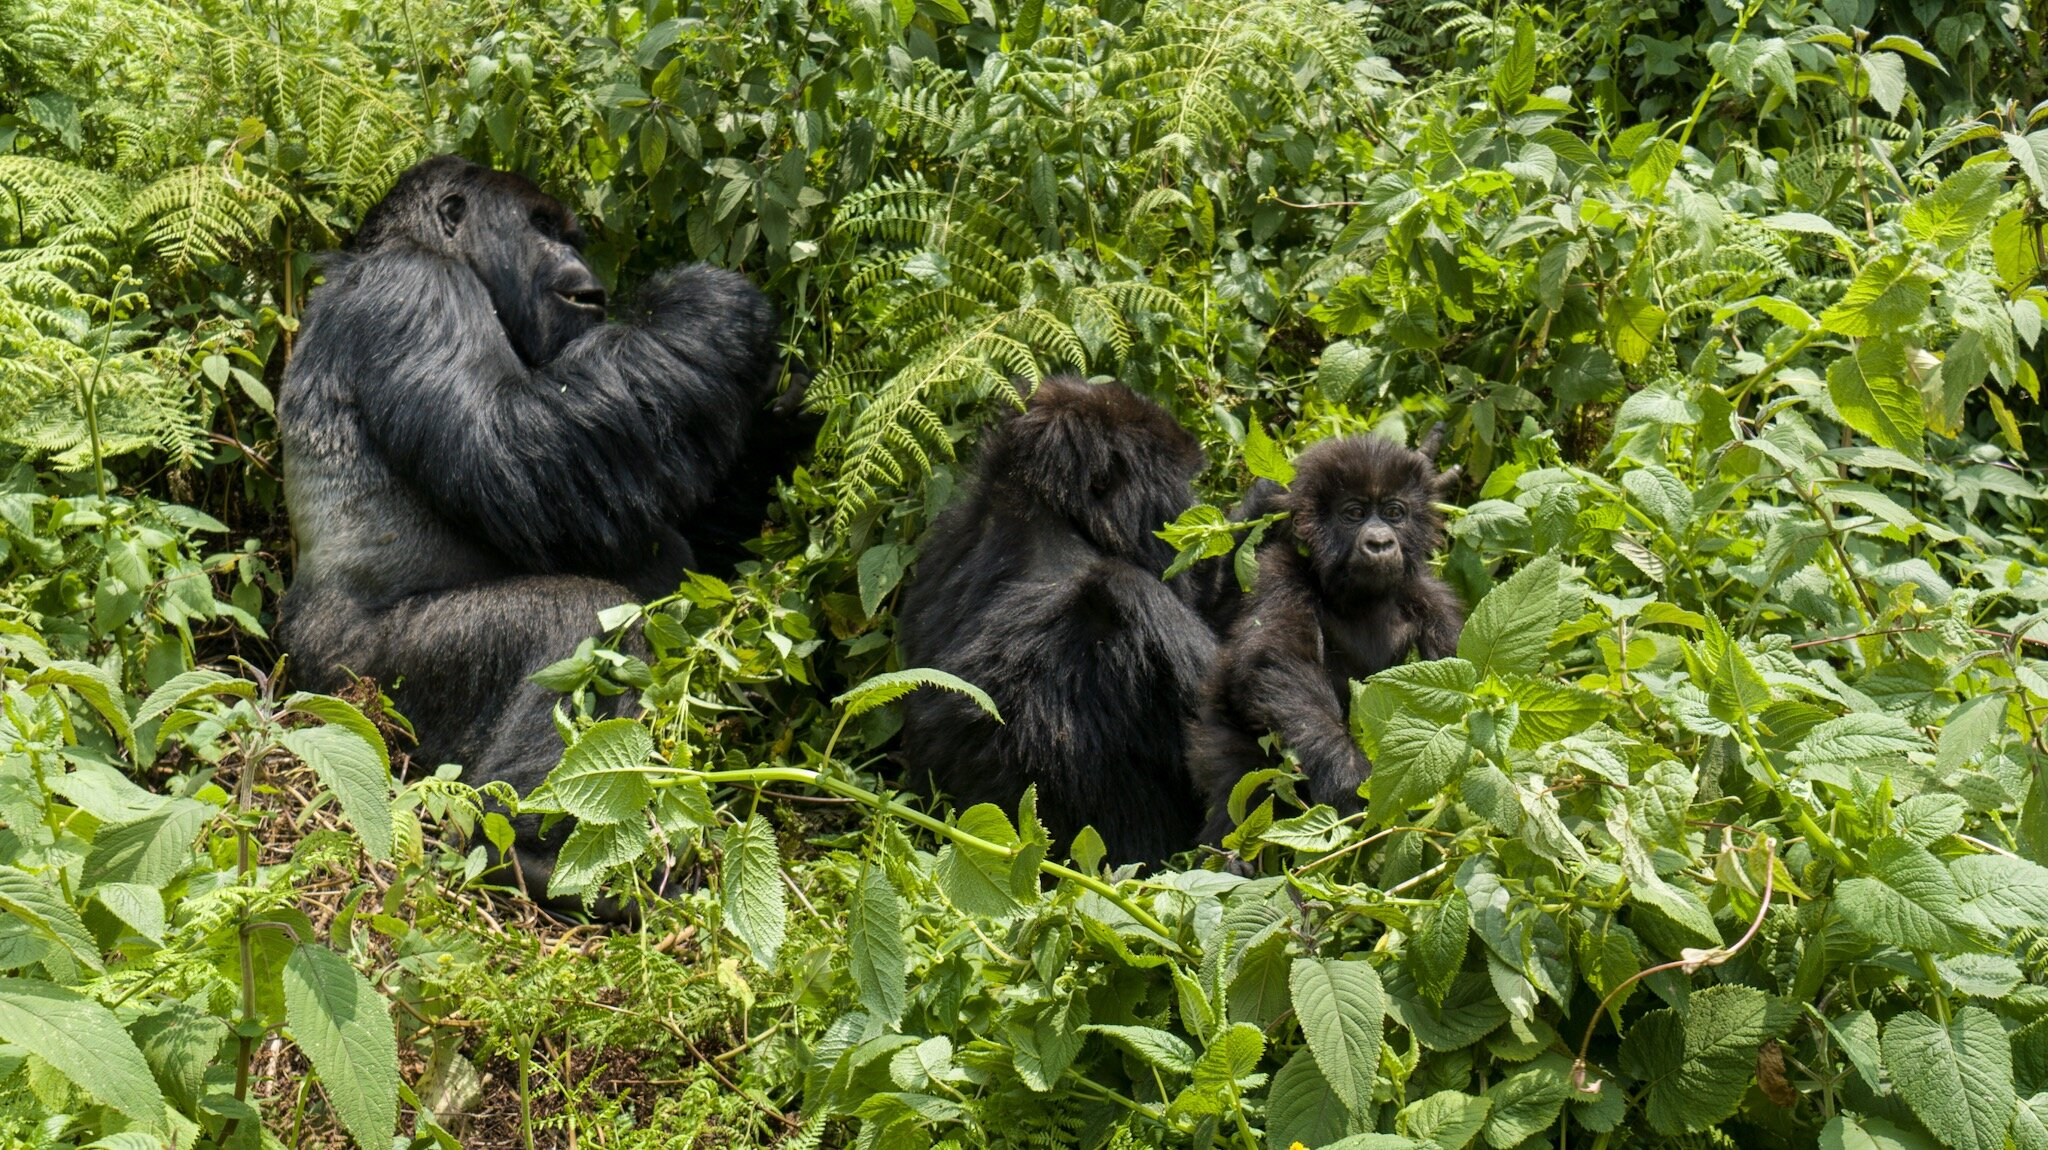 Gorilla family with 3 month old baby gorilla